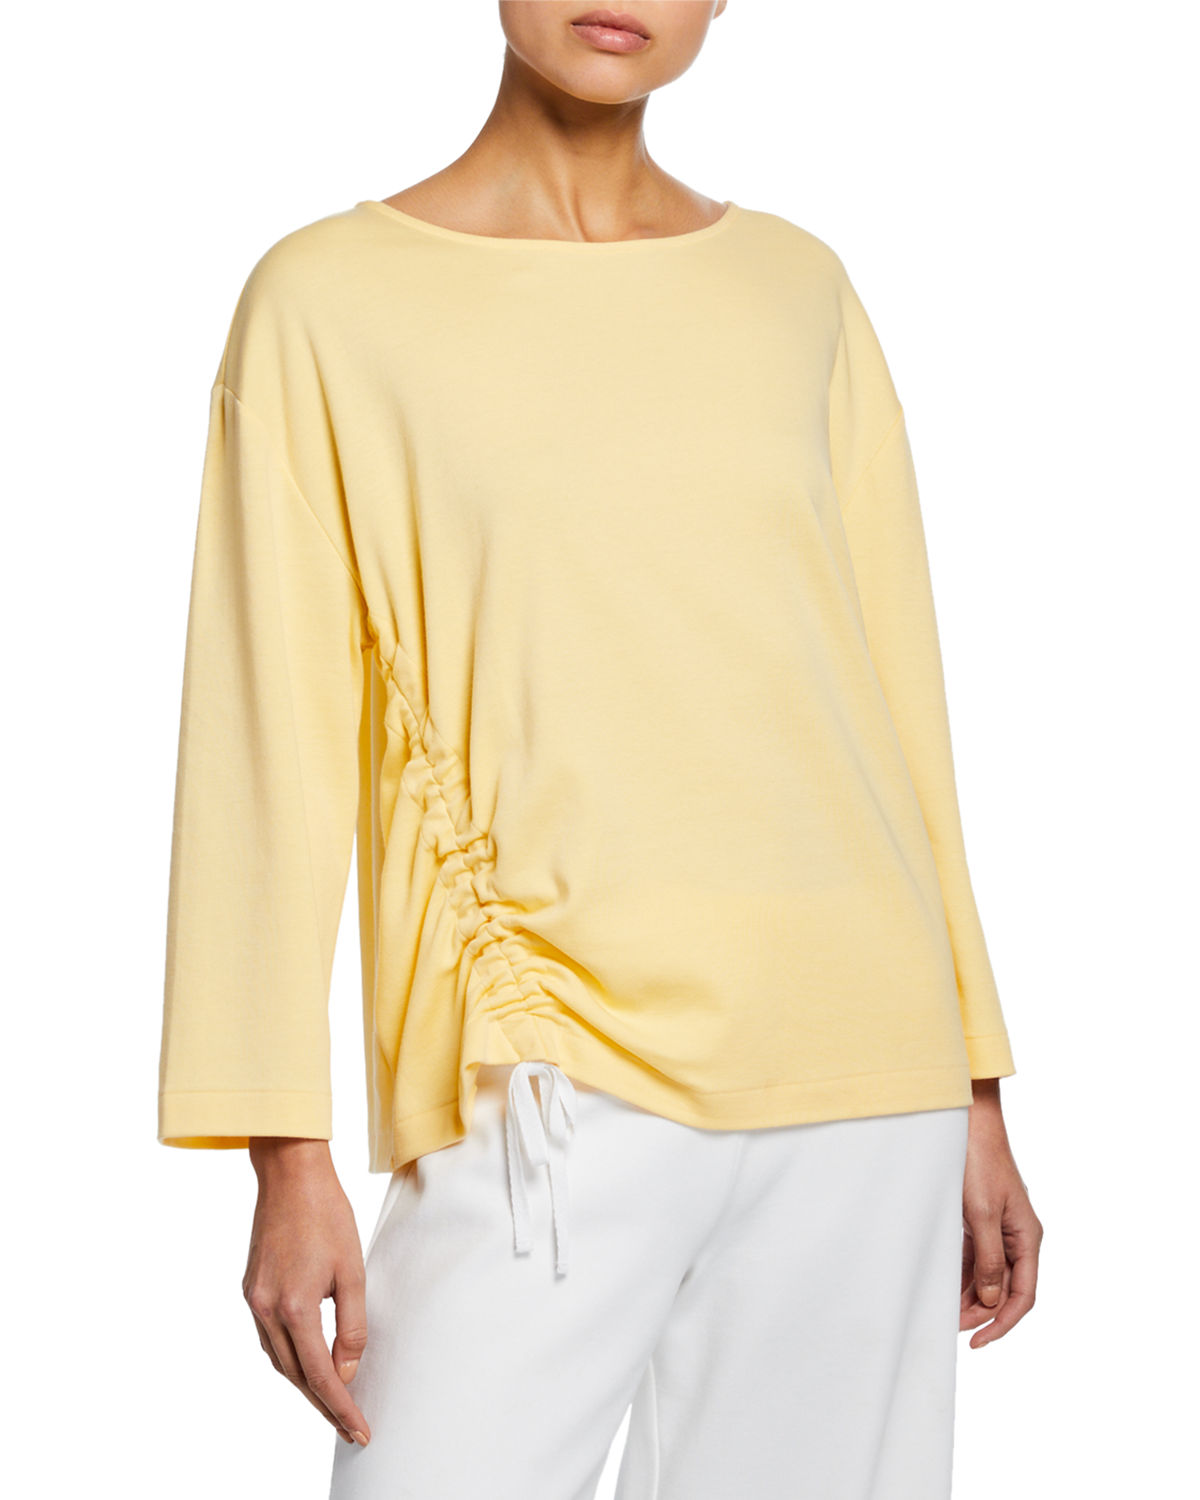 Joan Vass Tops LONG-SLEEVE COTTON INTERLOCK TOP WITH RUCHING & TIE DETAIL